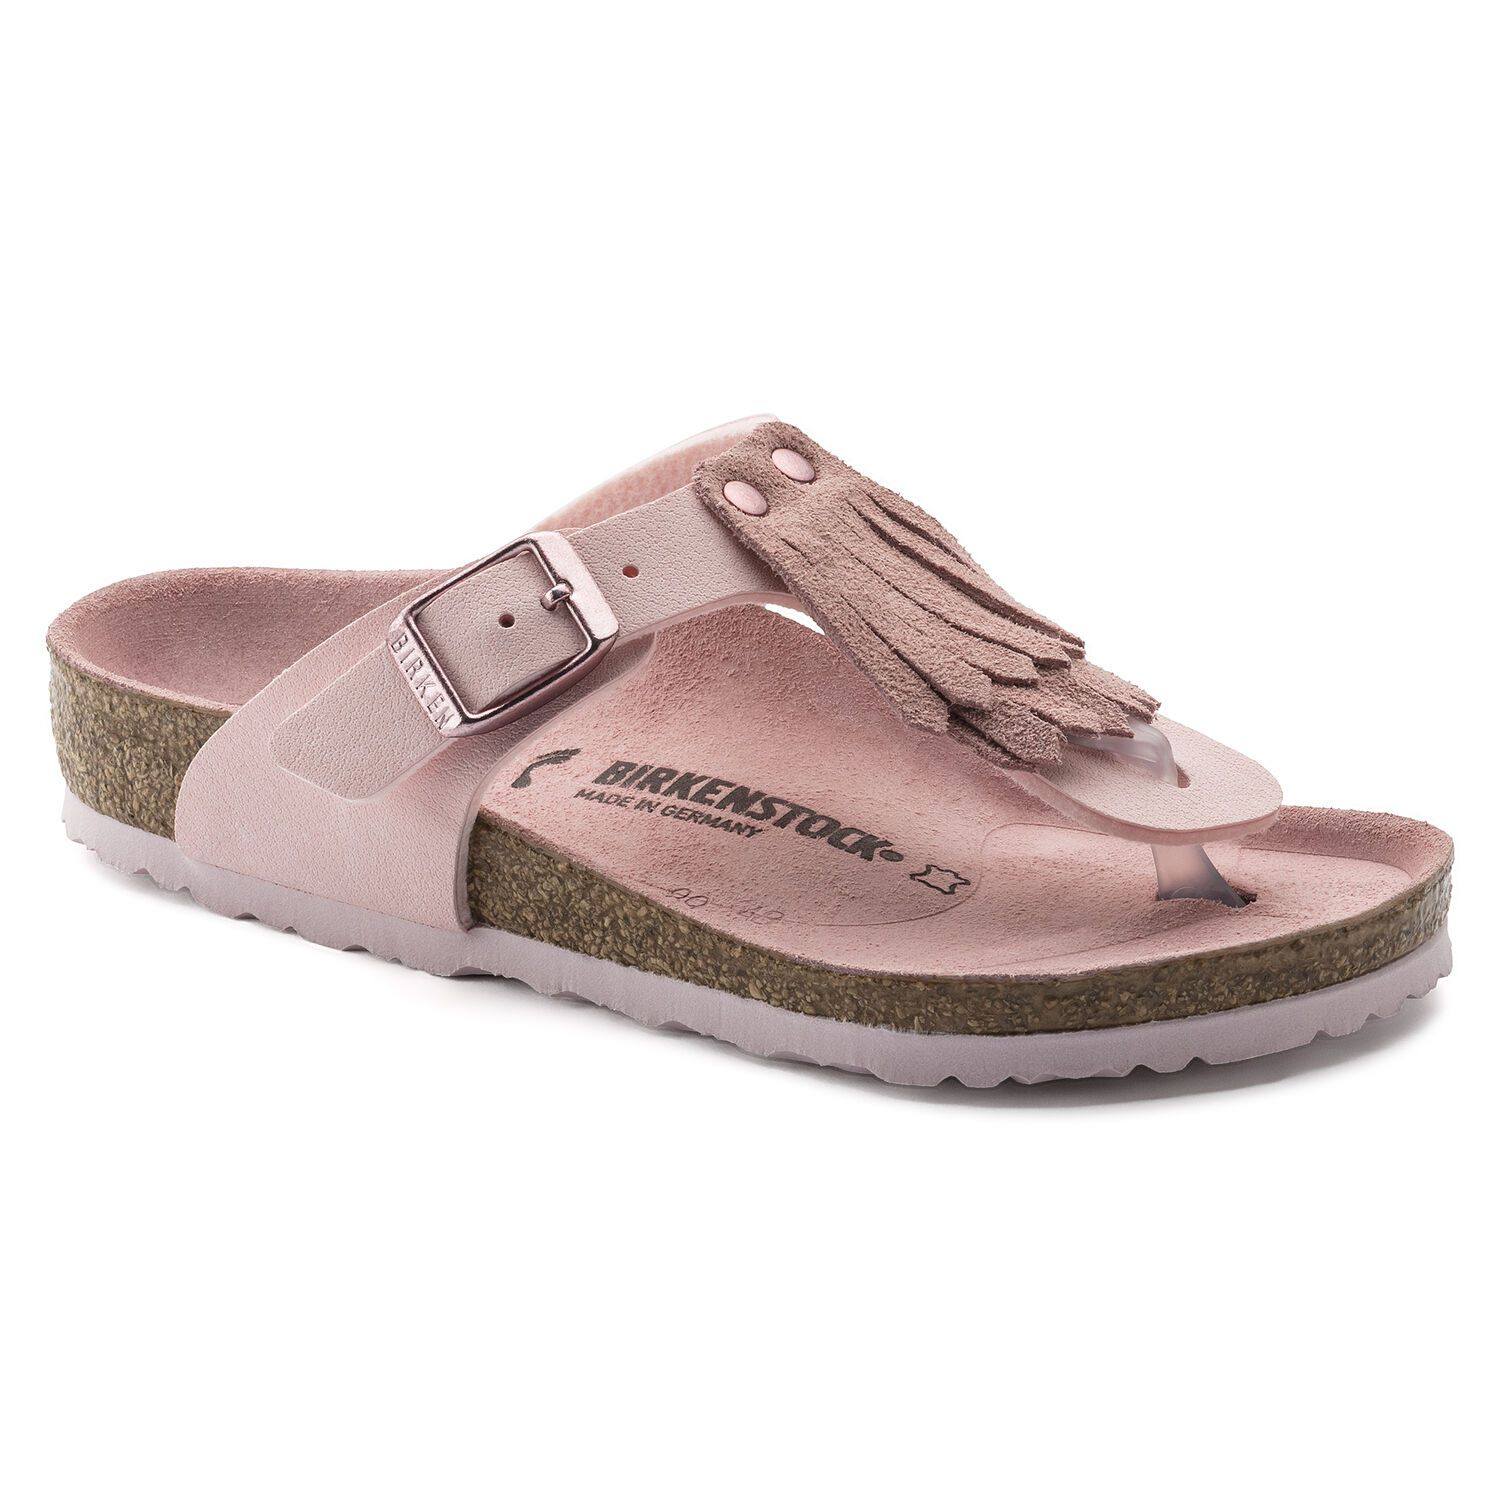 Birkenstock Gizeh Fringes Kids BF NB VL Rose Narrow EN